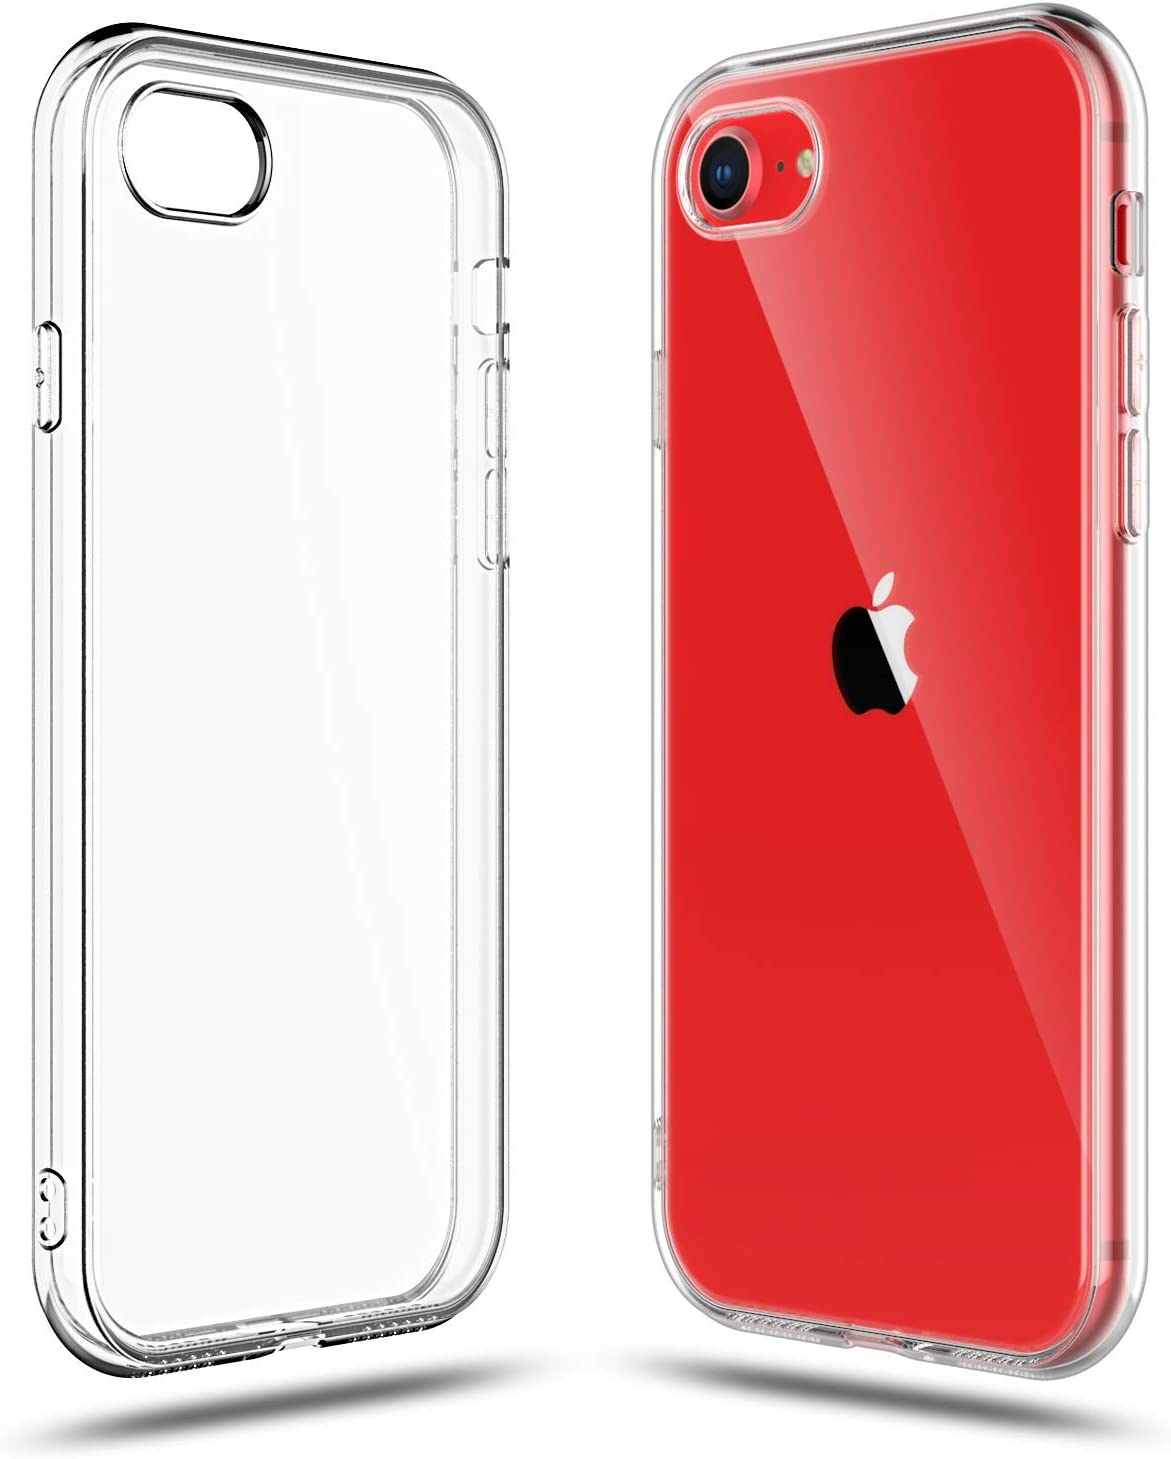 Shamo's Case for Apple iPhone SE 2020 2nd Generation, iPhone 8 and iPhone 7 Cover, 4.7-Inch, Shock Absorption TPU Rubber Gel Transparent Anti-Scratch ...